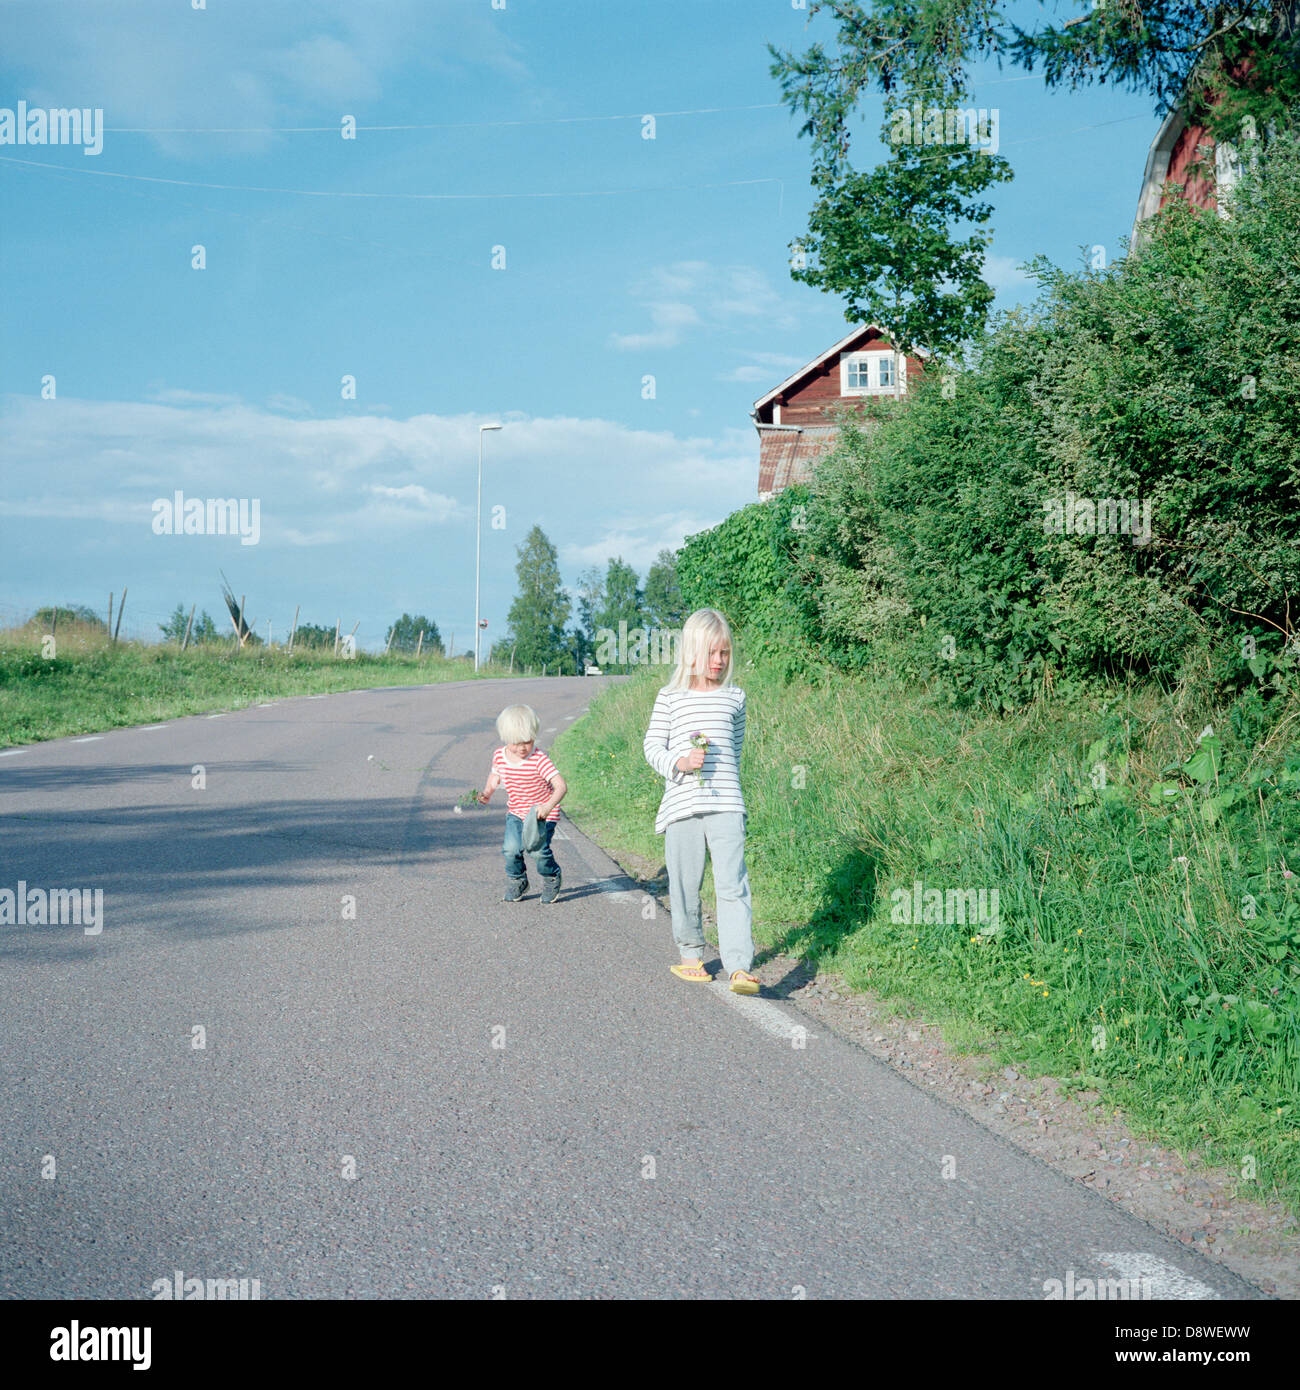 Boy and girl walking down country road - Stock Image